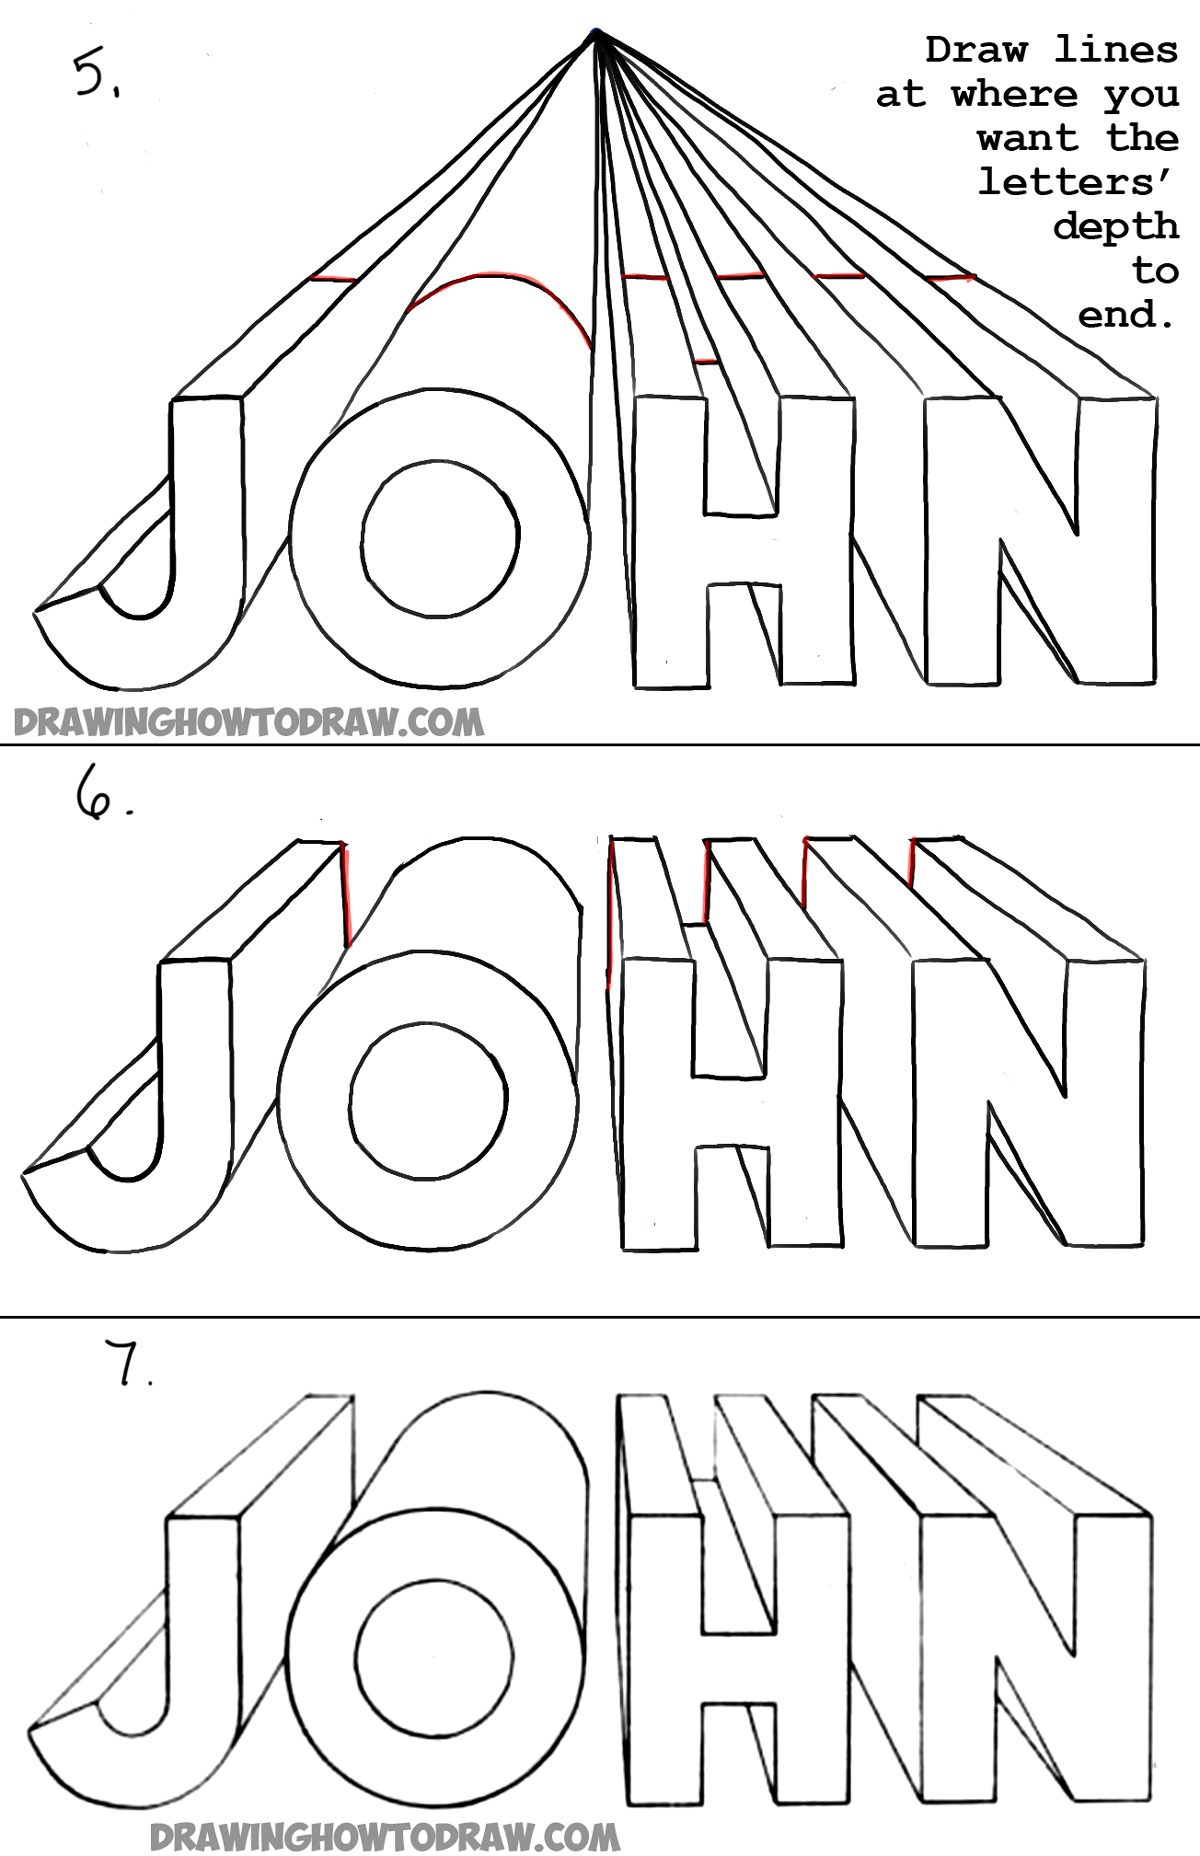 Drawing Lines In D : How to draw d letters in one point perspective